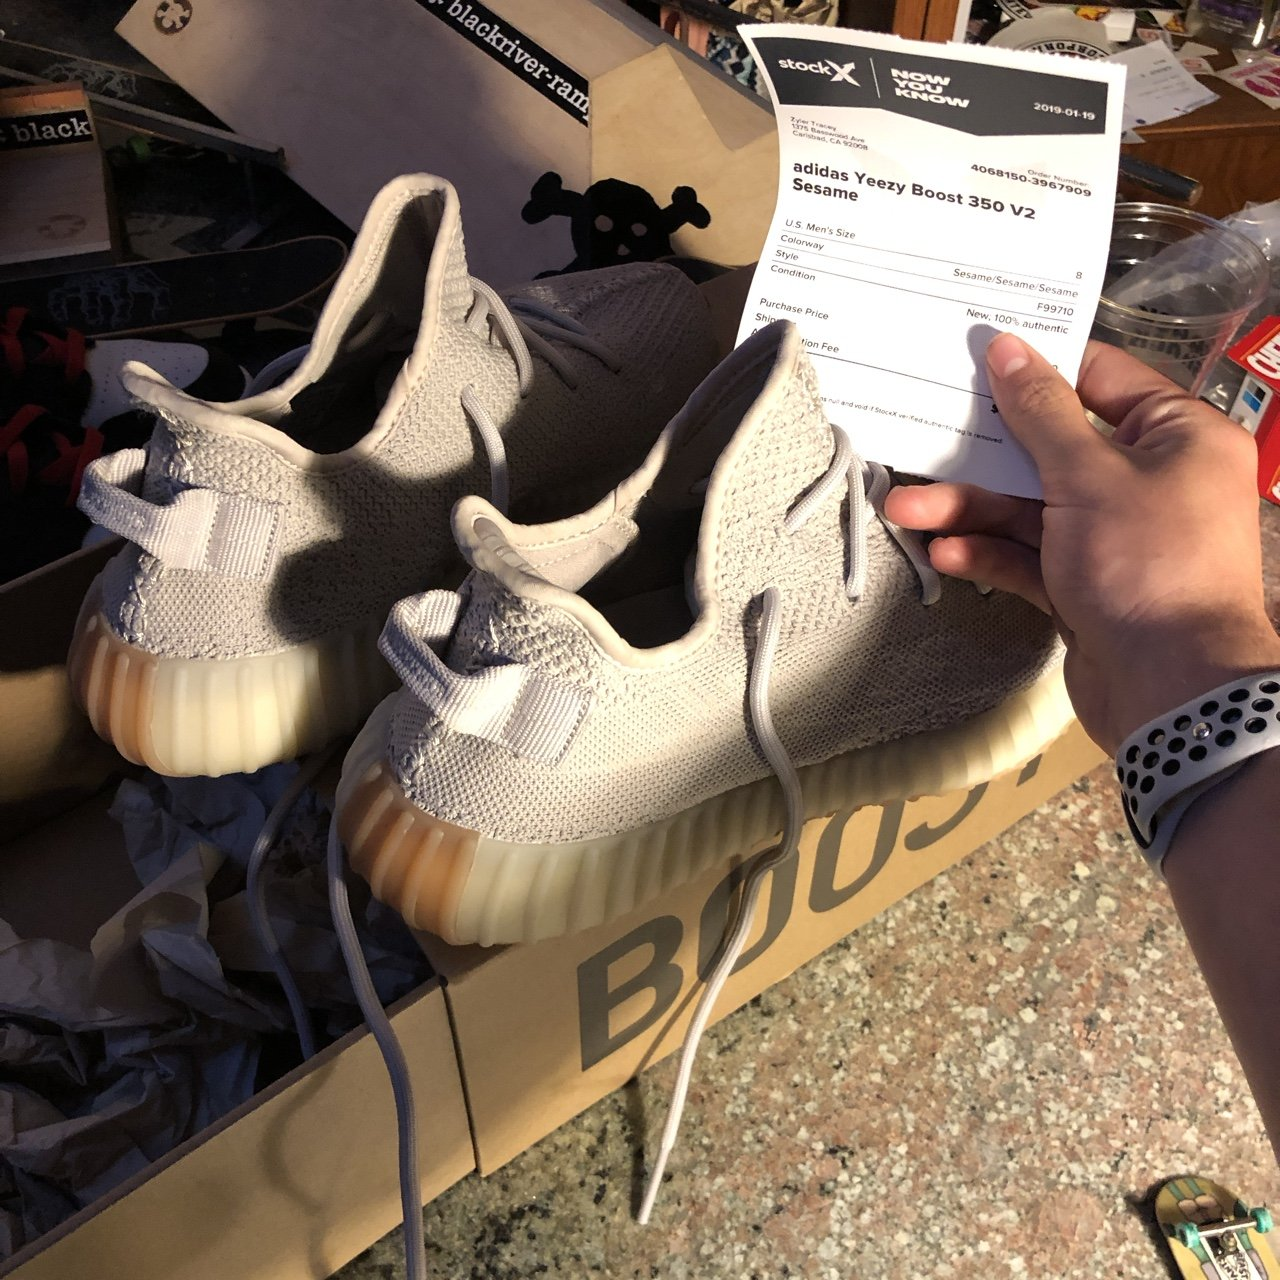 06b94a7ed Yeezy Boost 350 V2 Sesame size 8! Purchased from stock x